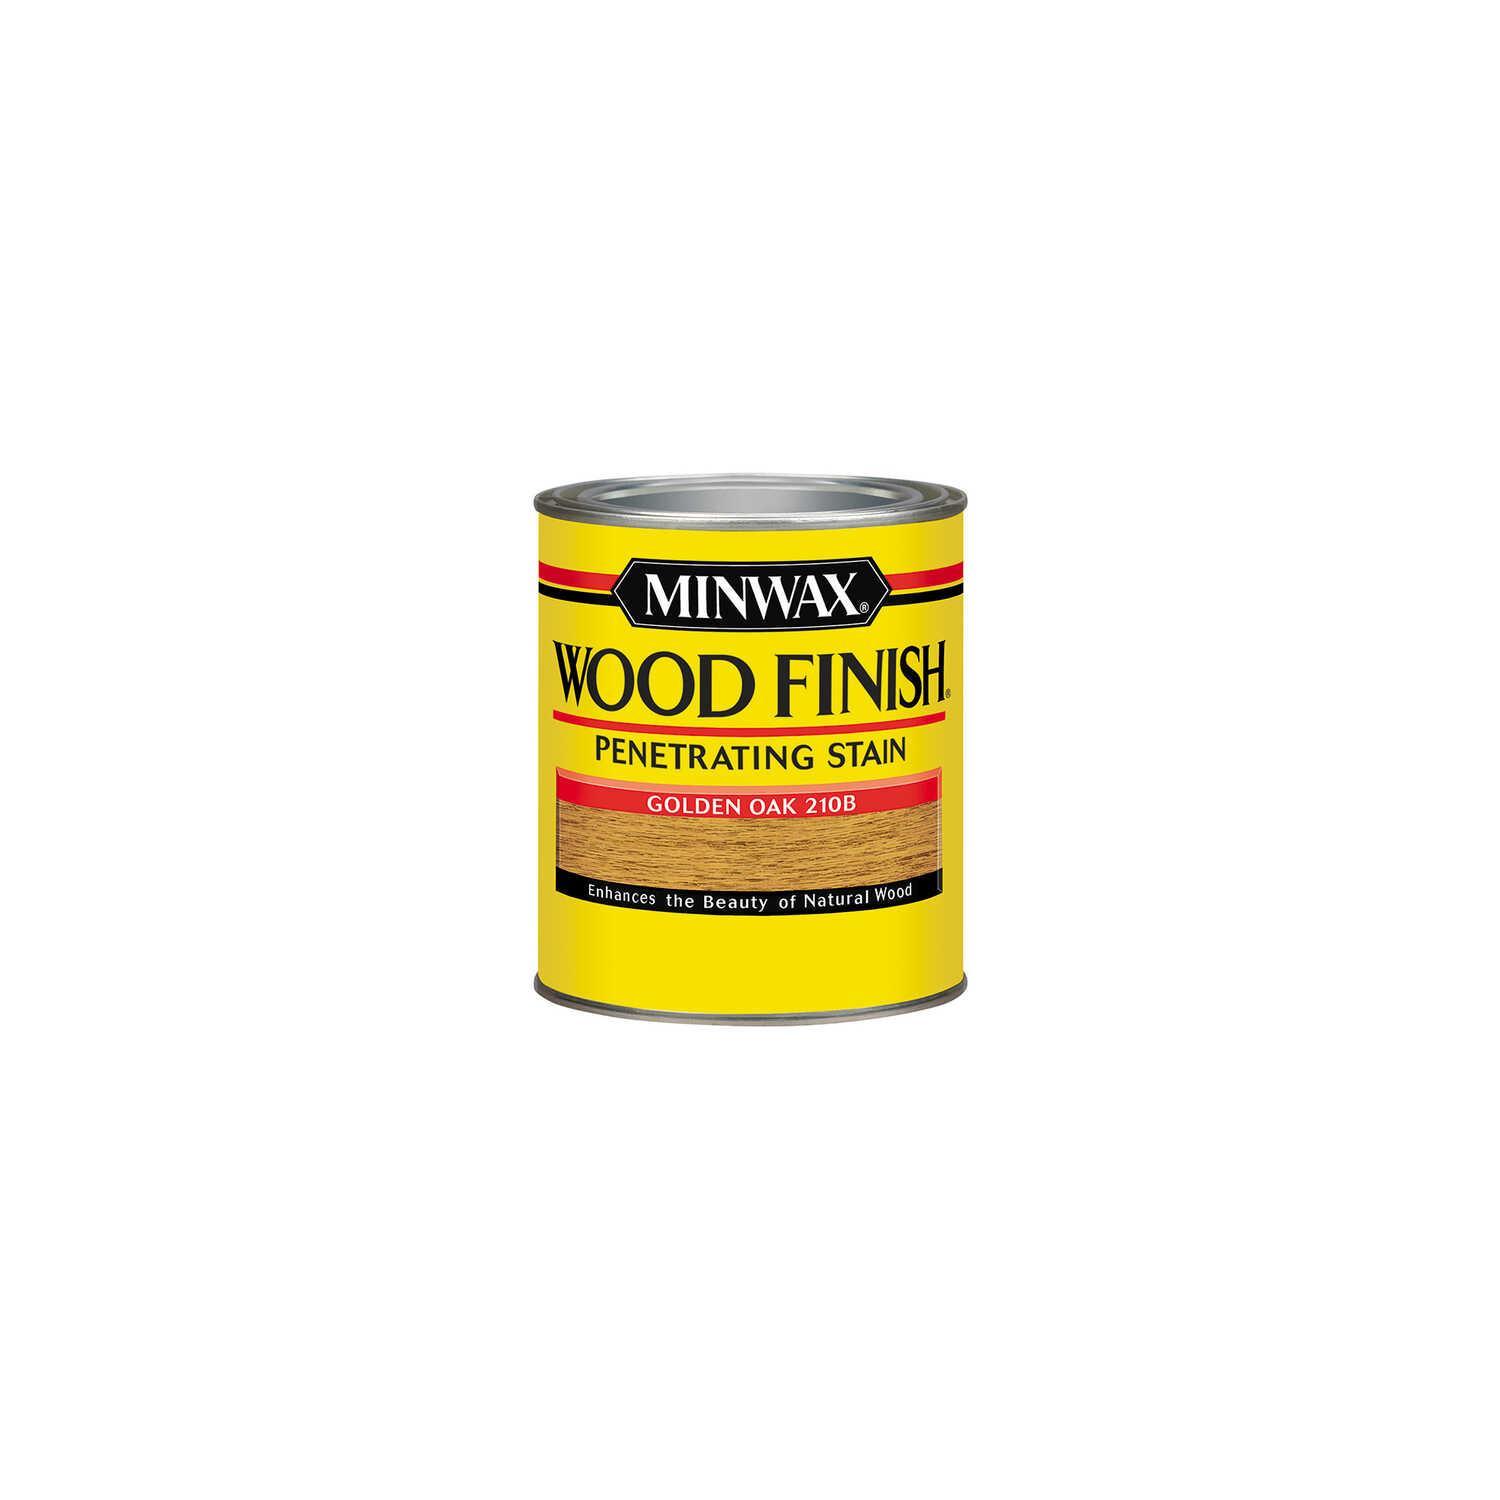 Minwax  Wood Finish  Semi-Transparent  Golden Oak  Oil-Based  Wood Stain  0.5 pt.